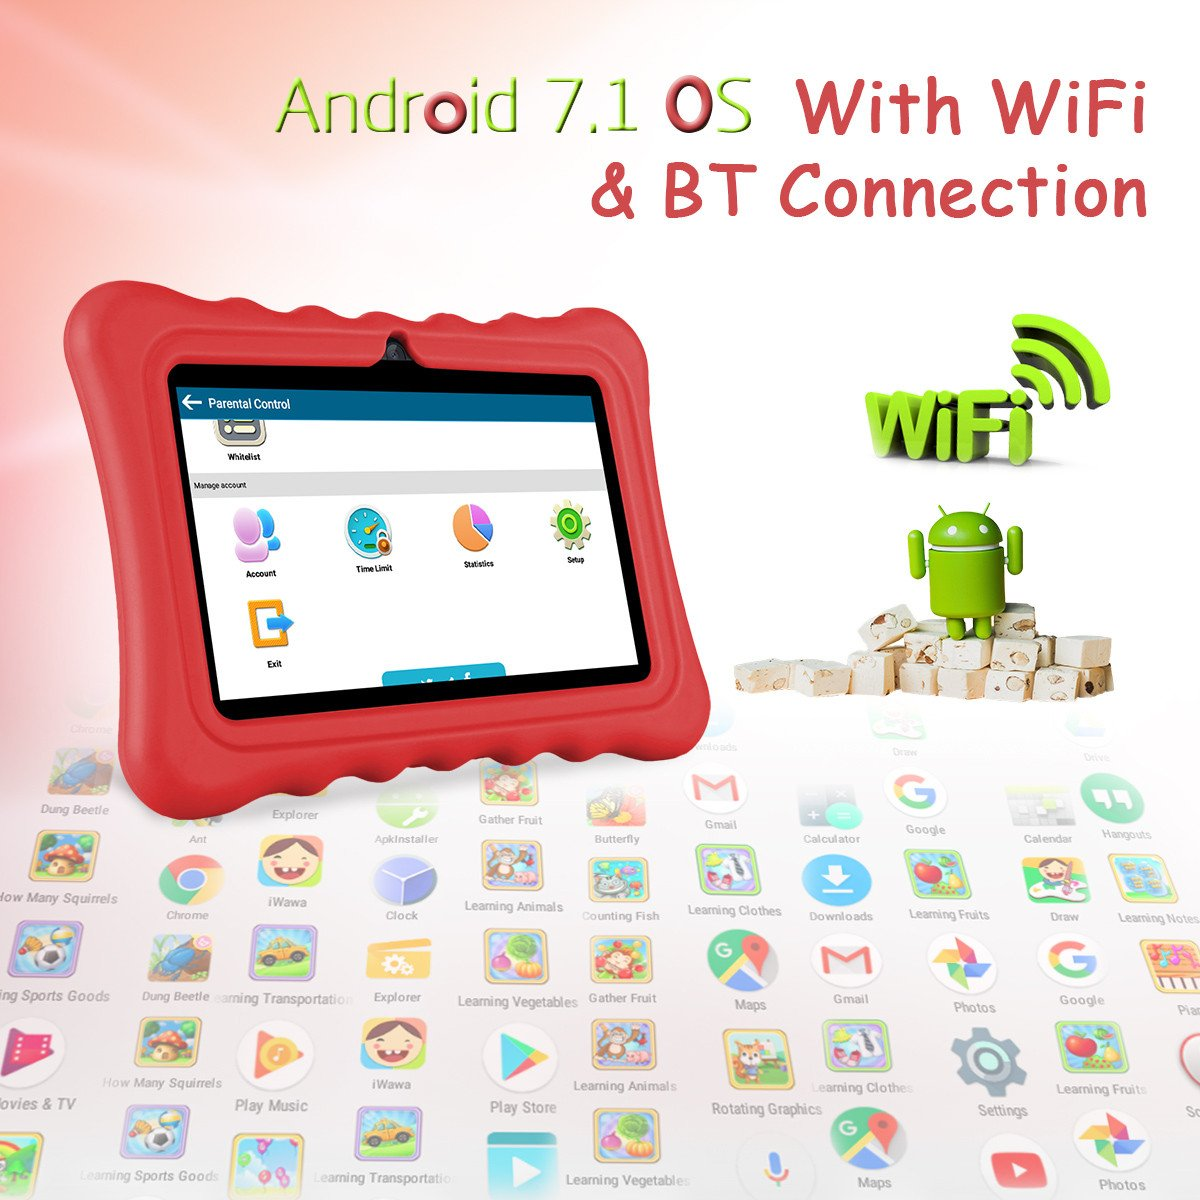 Ainol Q88 Android 7.1 RK3126C Quad Core 1GB+16GB 0.3MP+0.3MP Cam WIFI 2800Ah Tablet PC--Red by Ainol Q88 (Image #4)